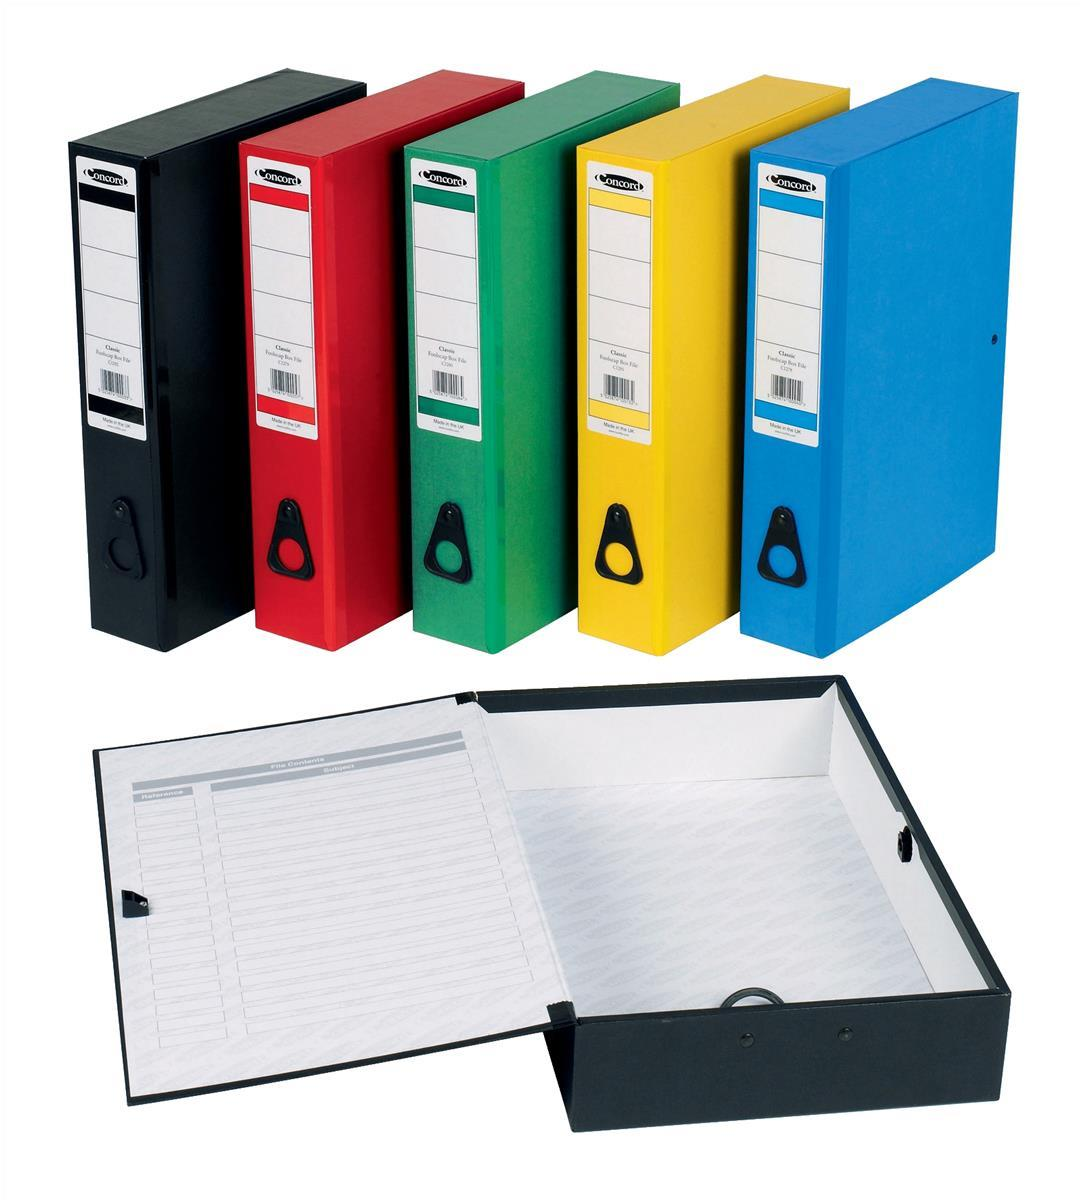 Concord Classic Box File Paper-Lock Finger-Pull And Catch 75mm Spine Foolscap Assorted Code C1289